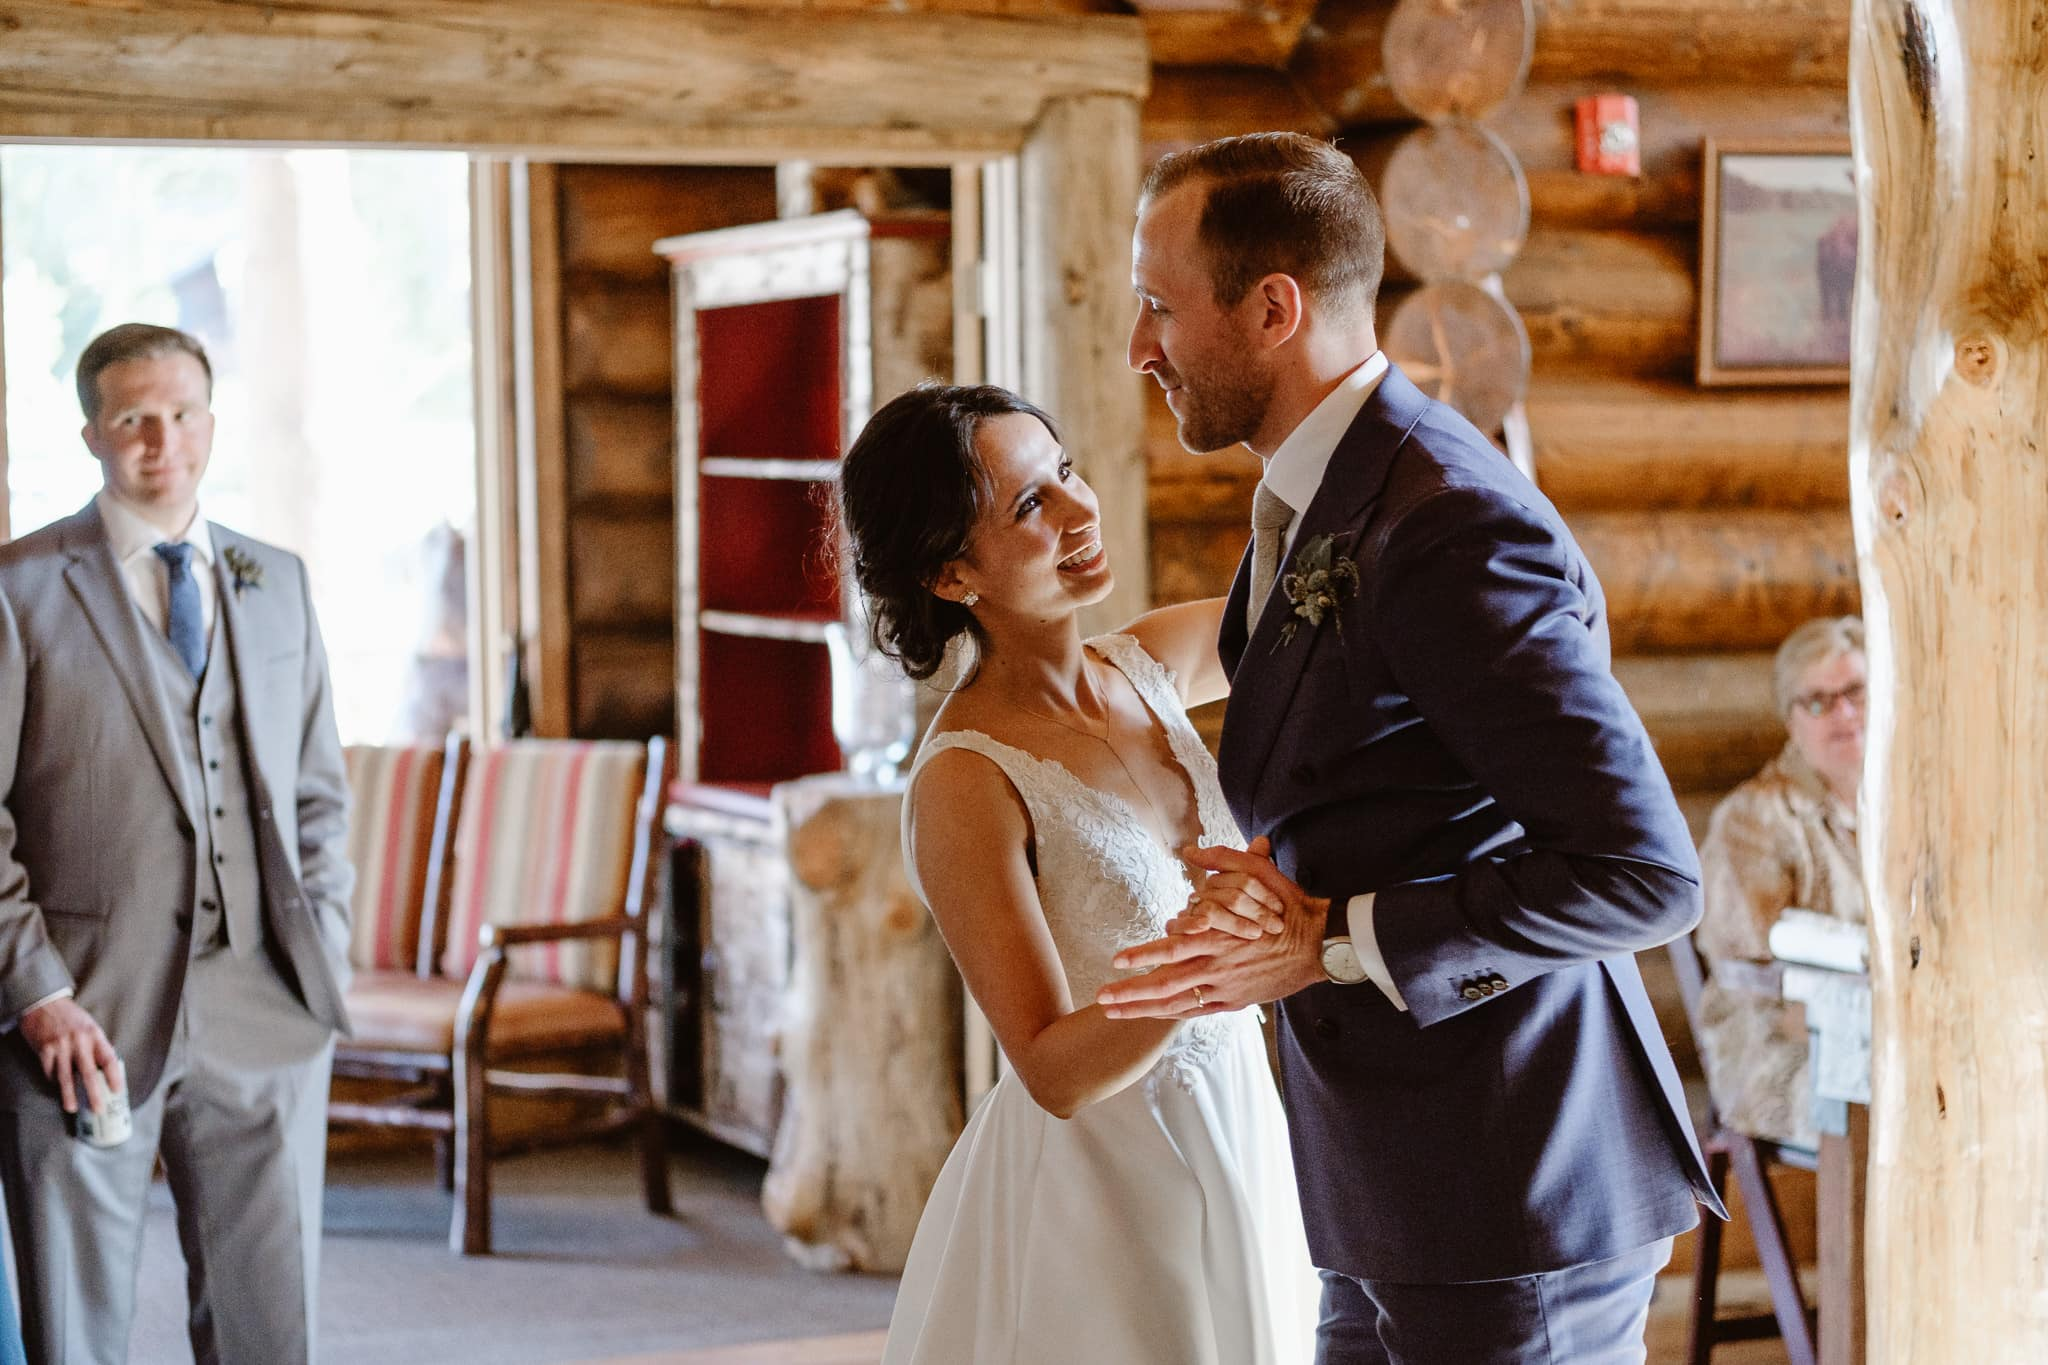 Bride and groom first dance at Breckenridge Nordic Center wedding, Summit County wedding photographer